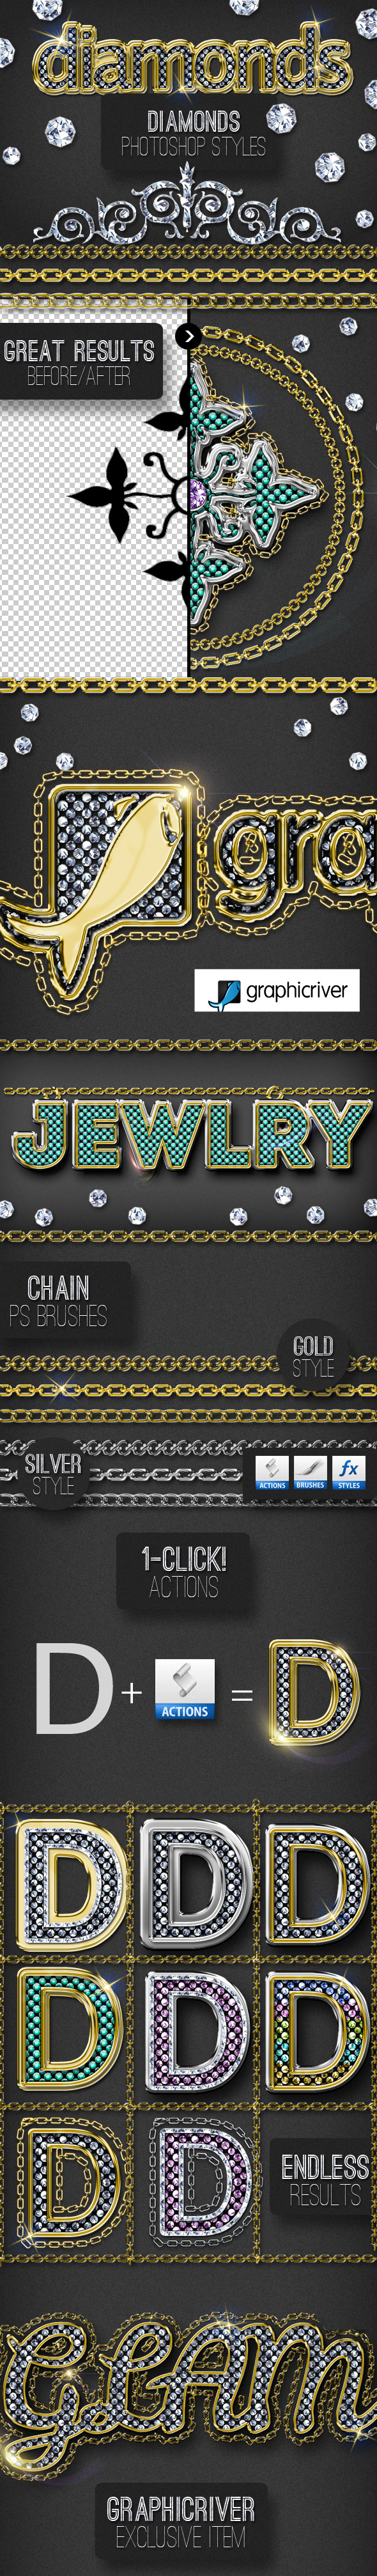 Bling Bling Diamond Photoshop Style Creator